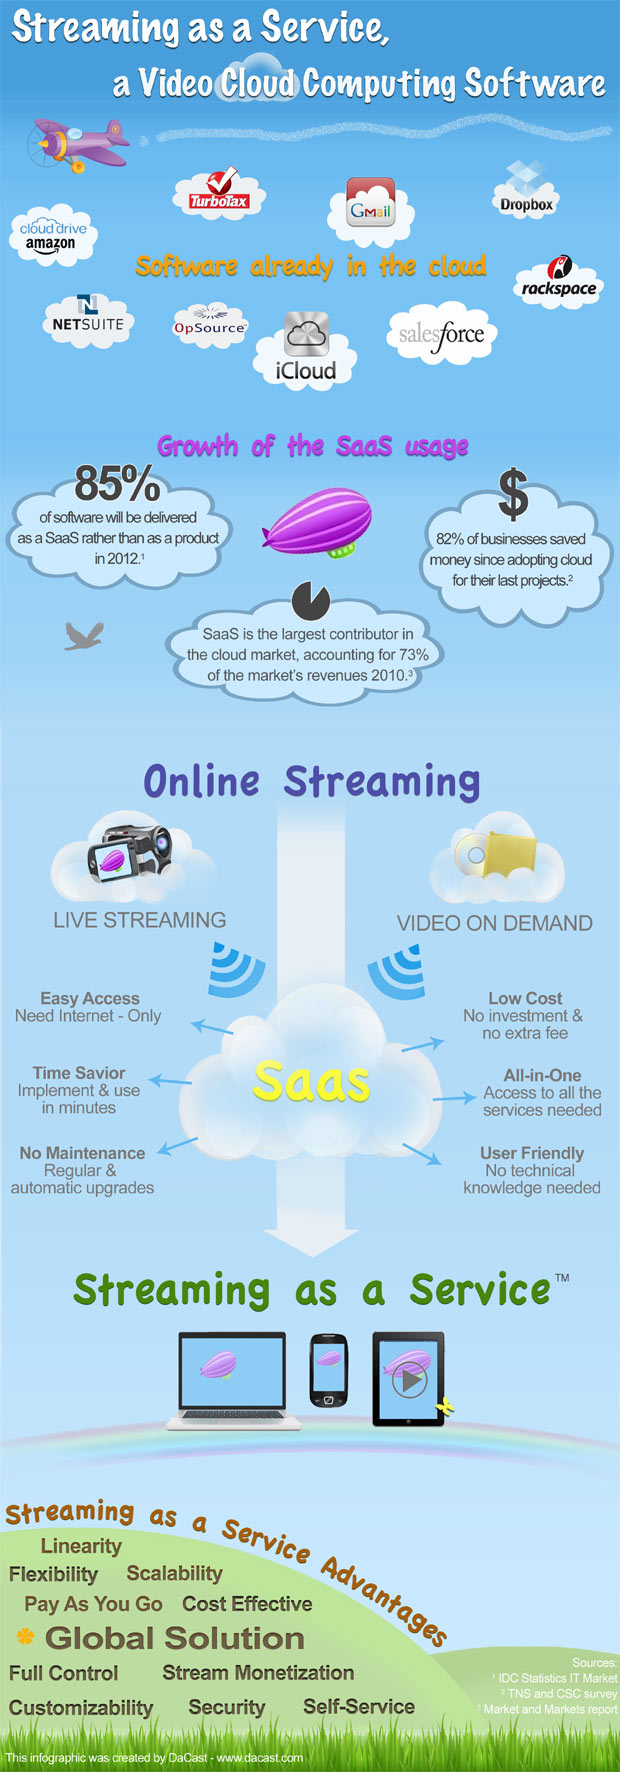 streaming as a service infographic